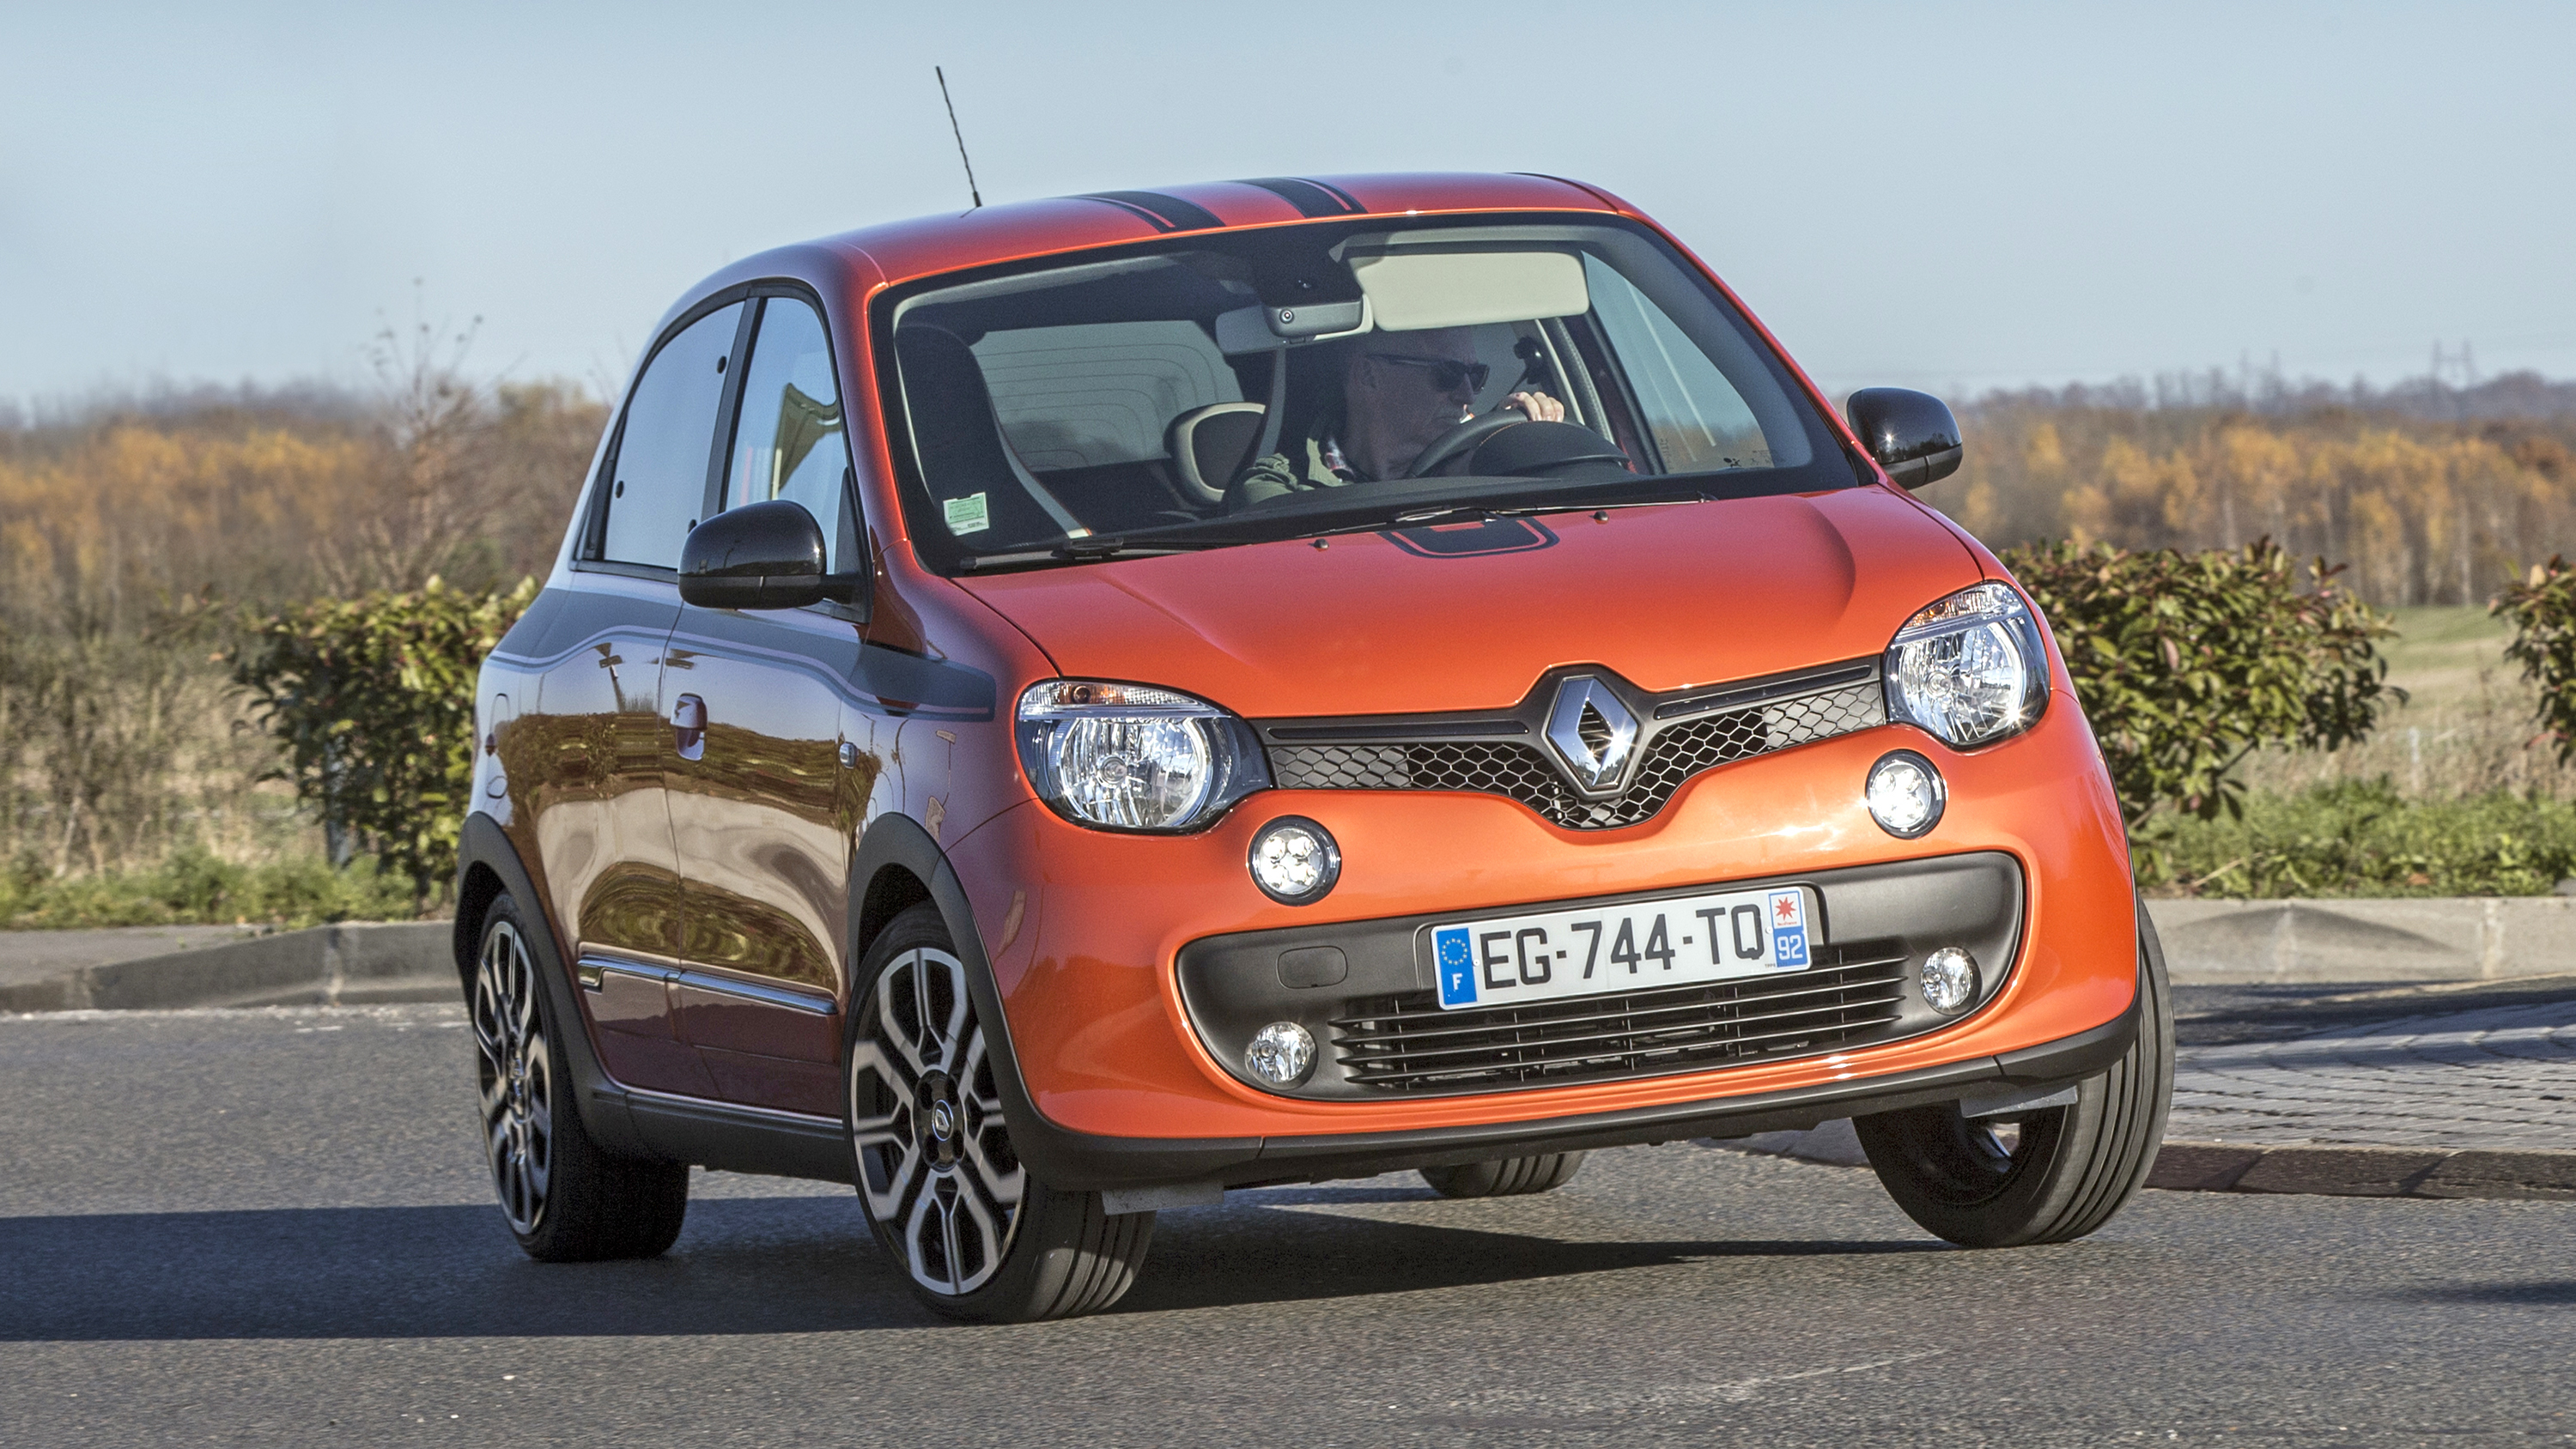 Renault Twingo Gt Review Tiny Renaultsport Hot Hatch Driven 2016 2018 Top Gear